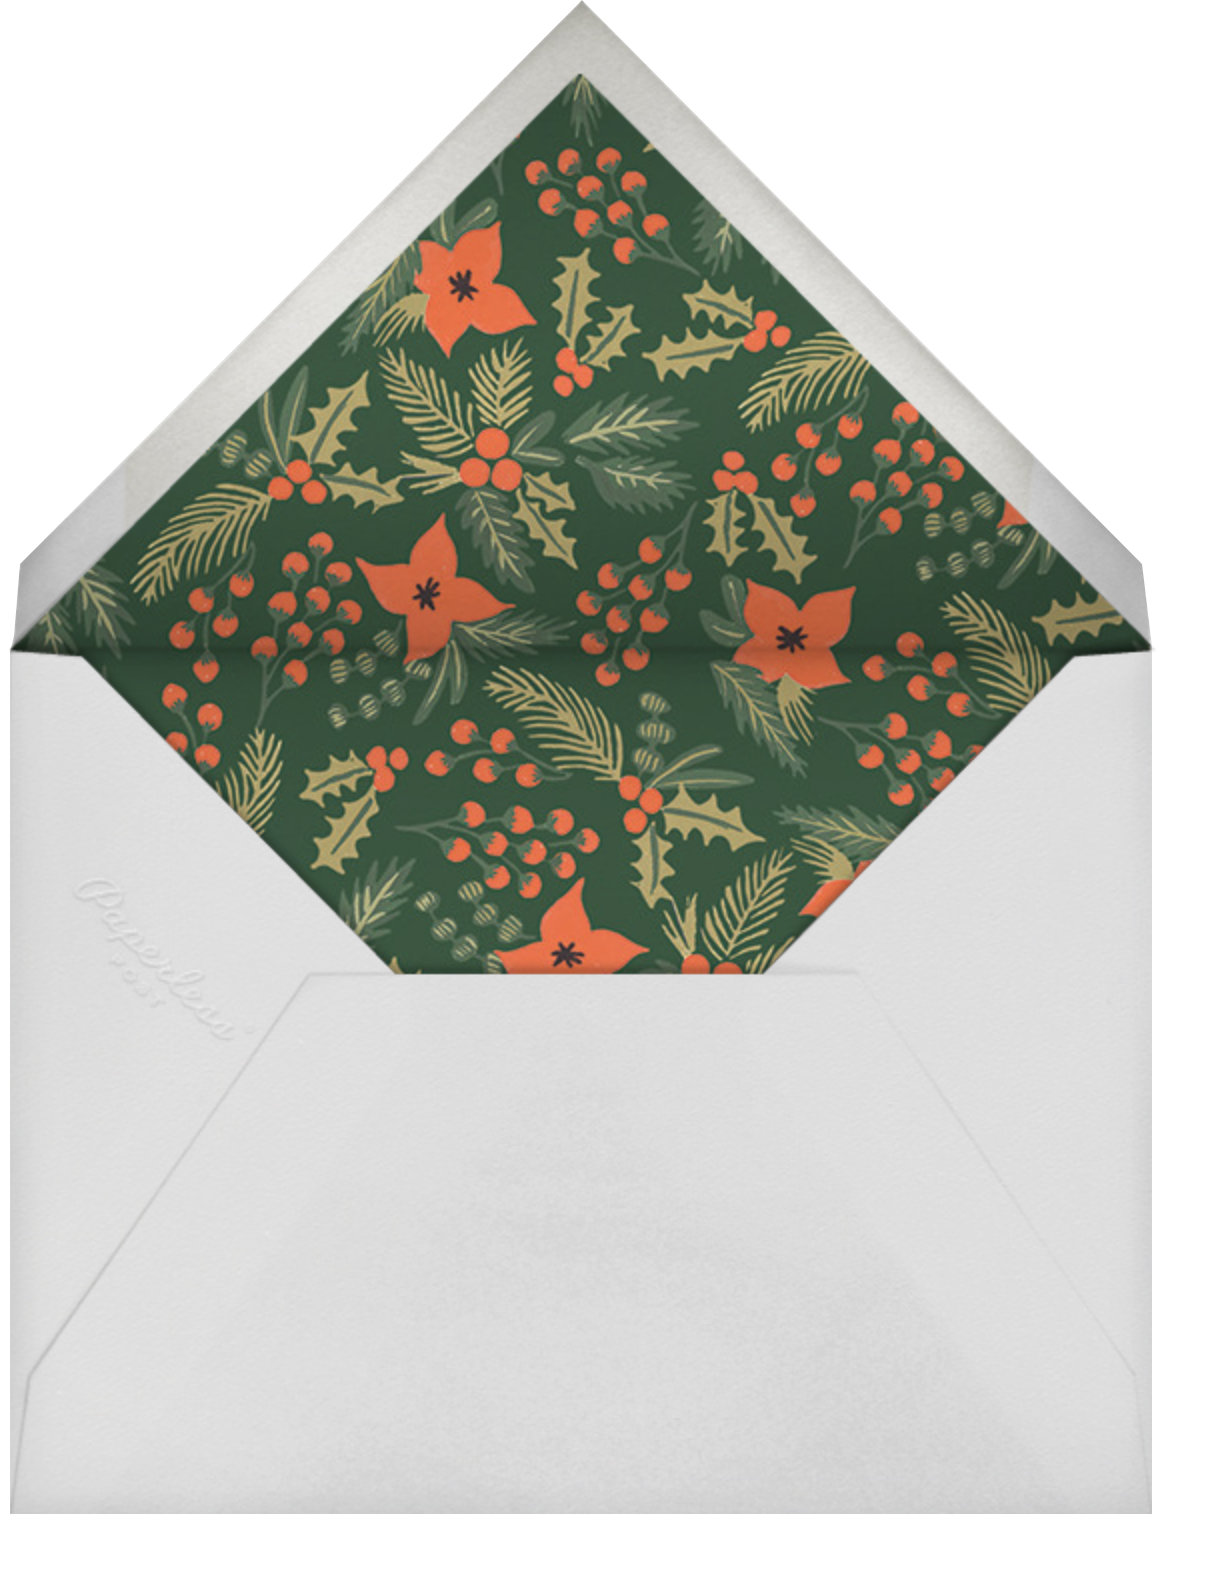 Holiday Potpourri (Inset) - Rifle Paper Co. - Holiday cards - envelope back